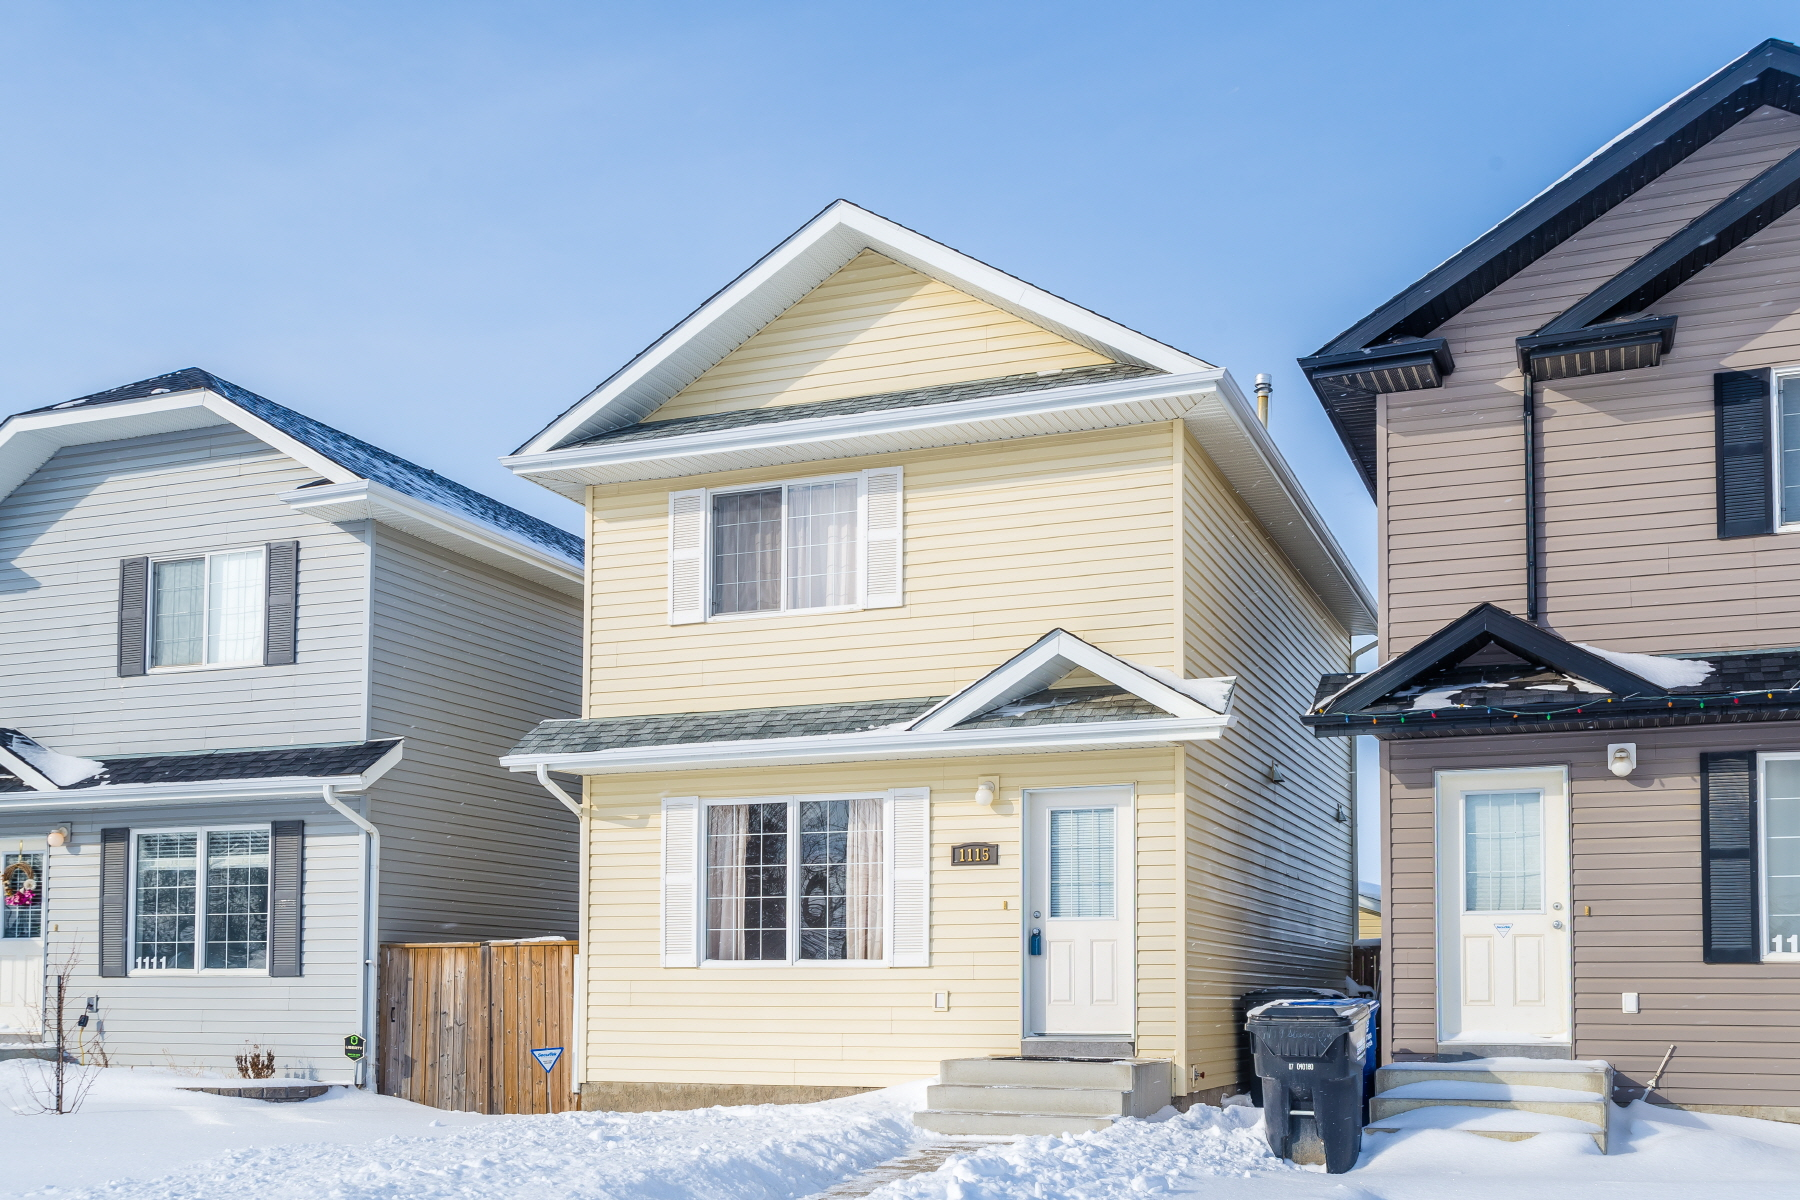 Main Photo: 1115 Steeves Avenue in Saskatoon: Confederation Park Residential for sale : MLS®# SK726258